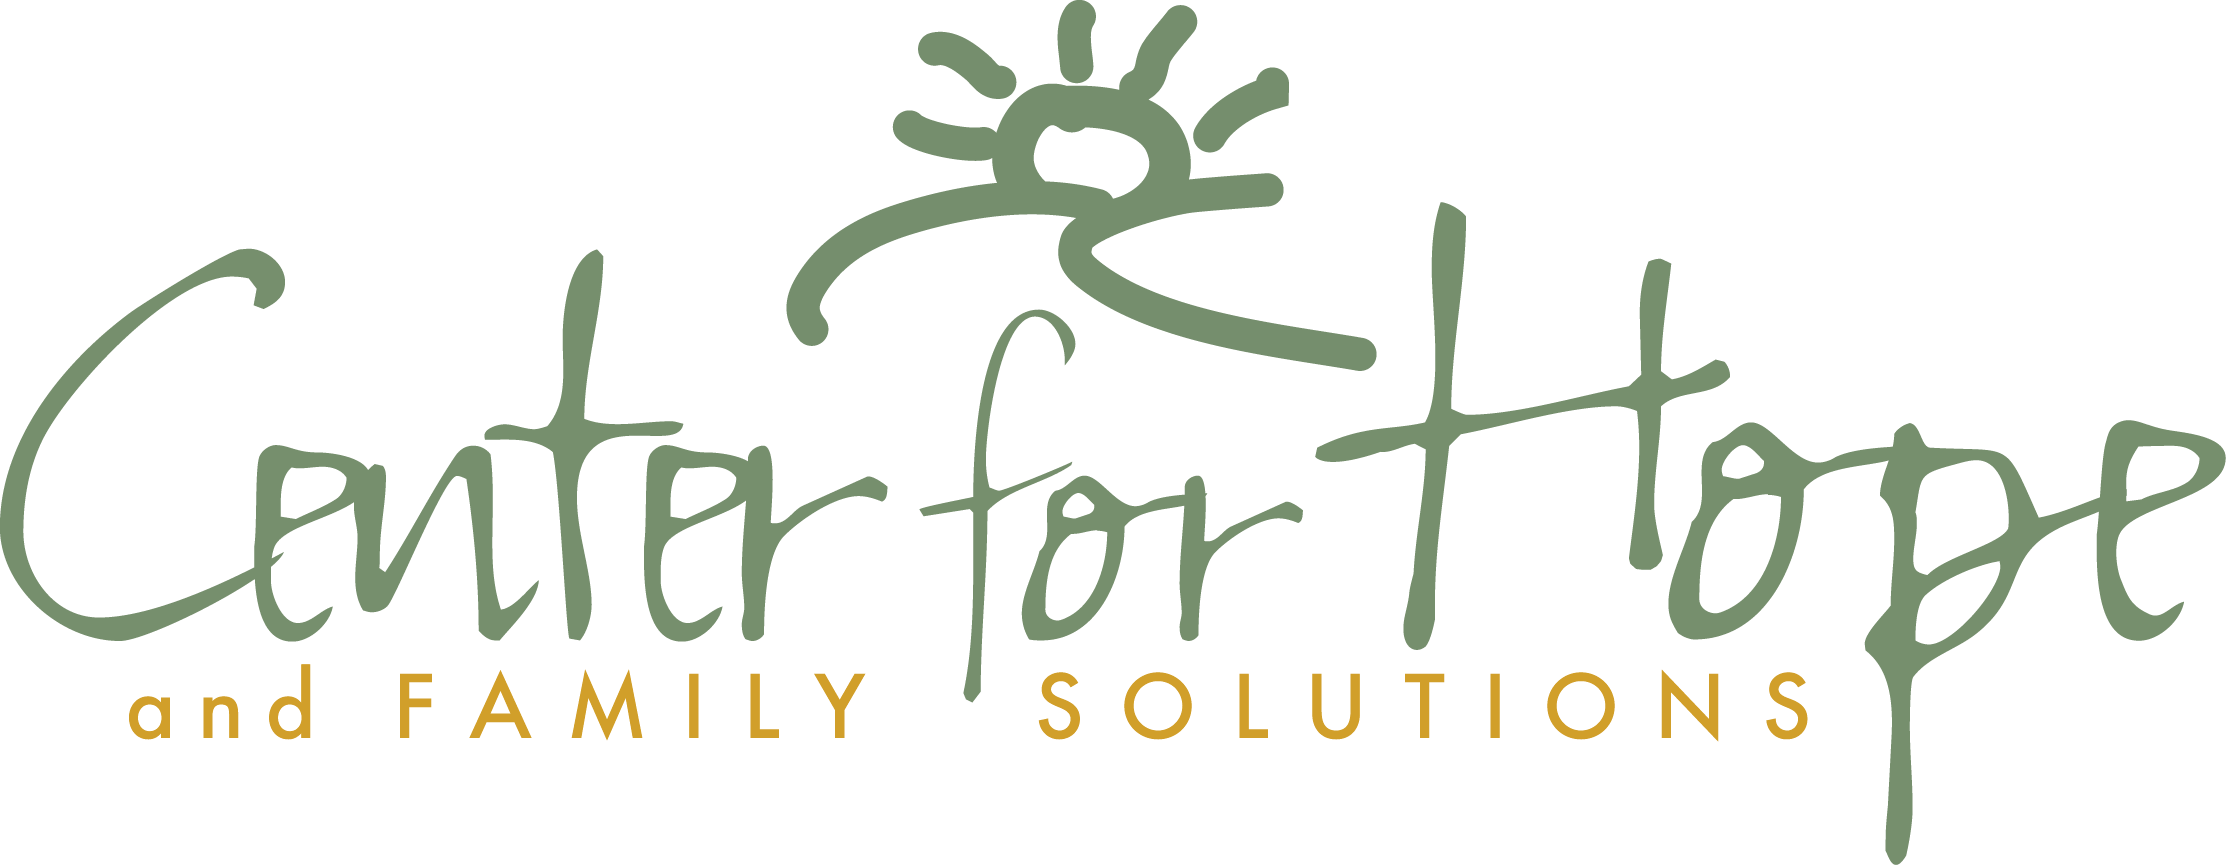 Center for Hope and Family Solutions